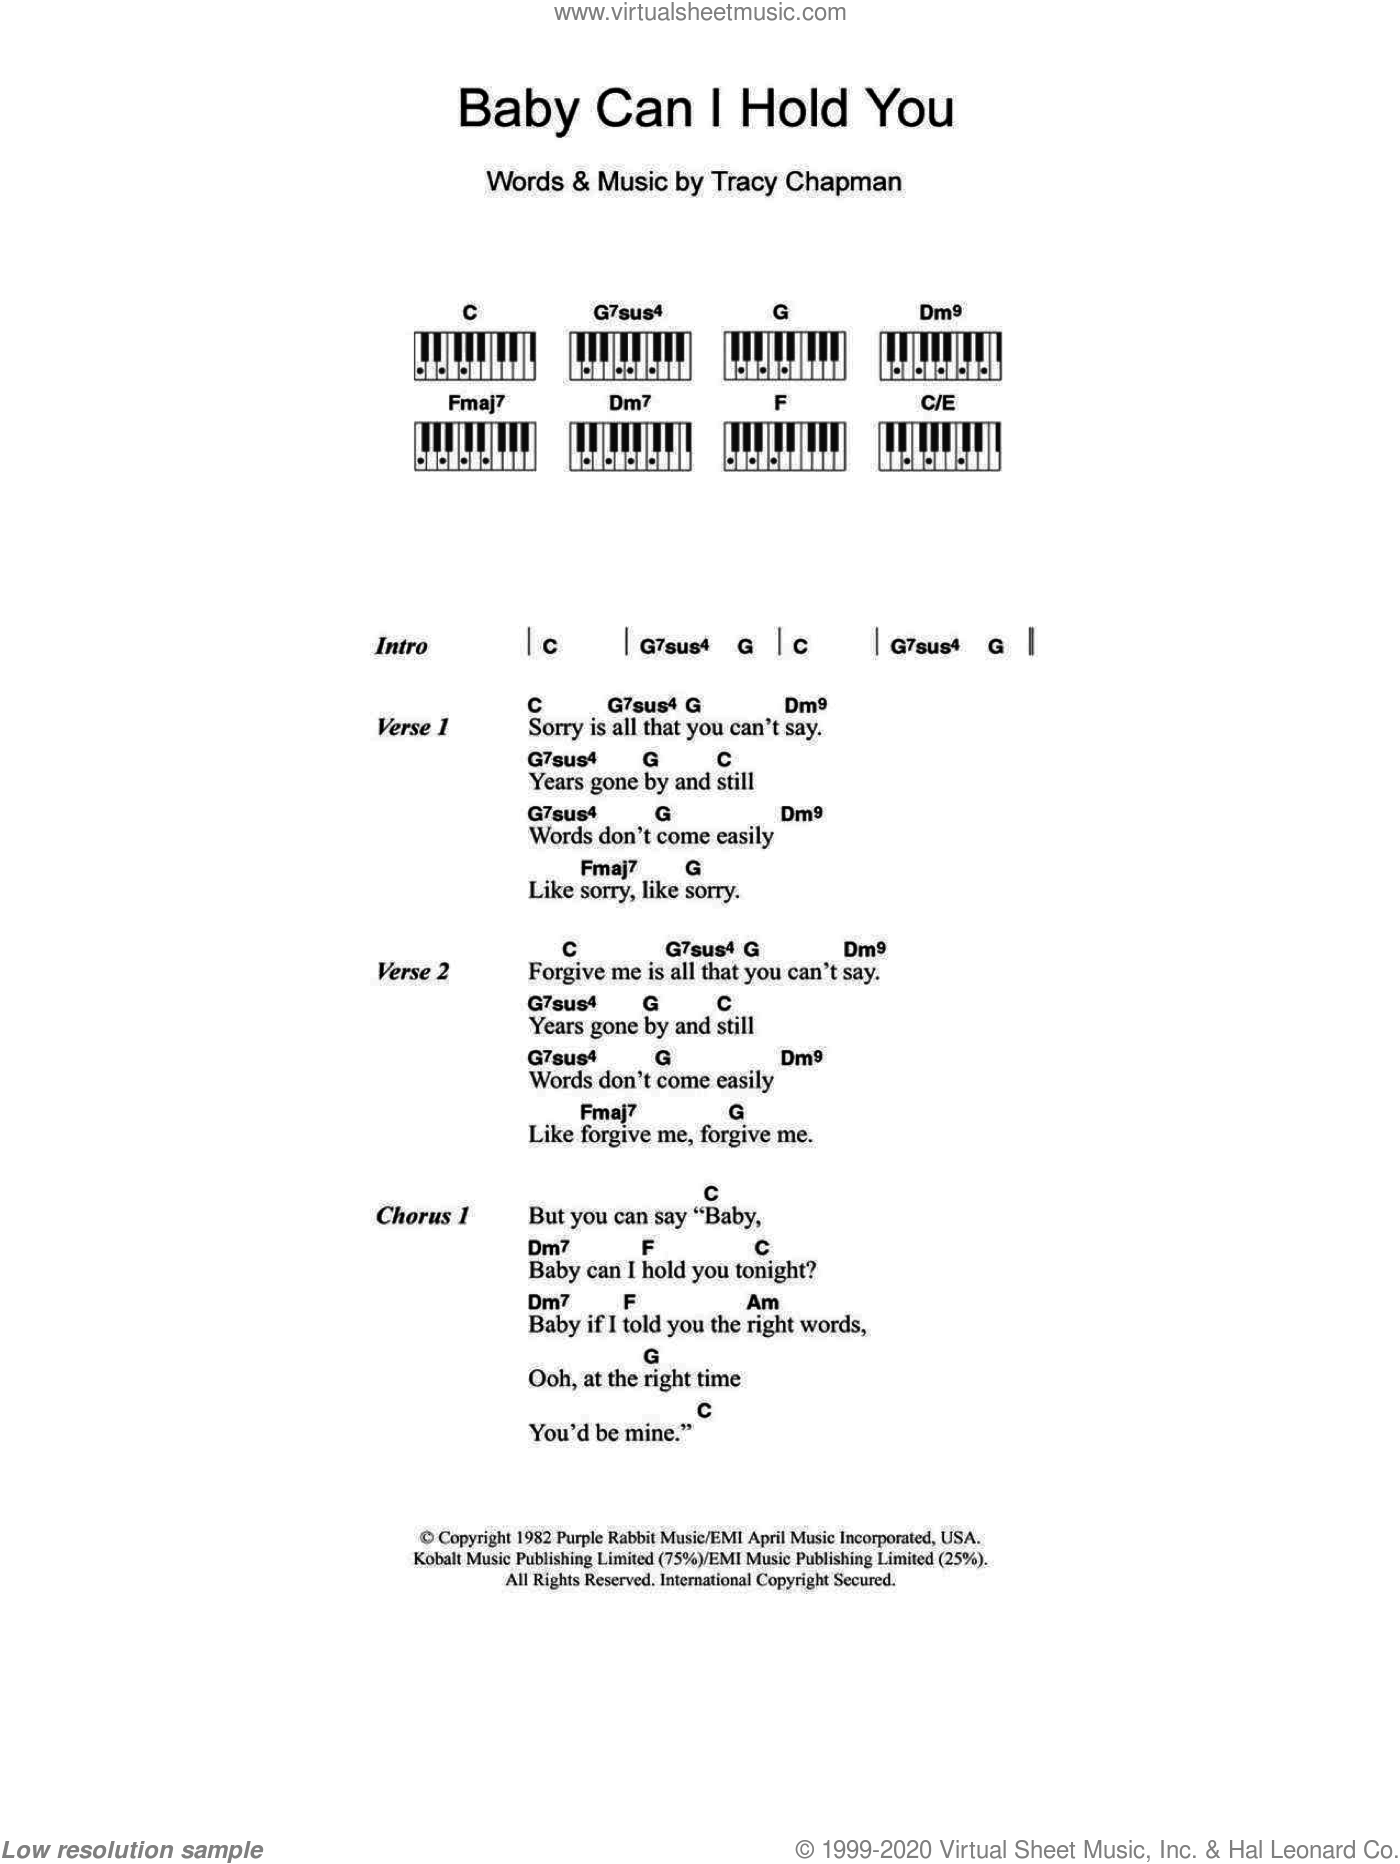 Baby Can I Hold You sheet music for piano solo (chords, lyrics, melody) by Tracy Chapman